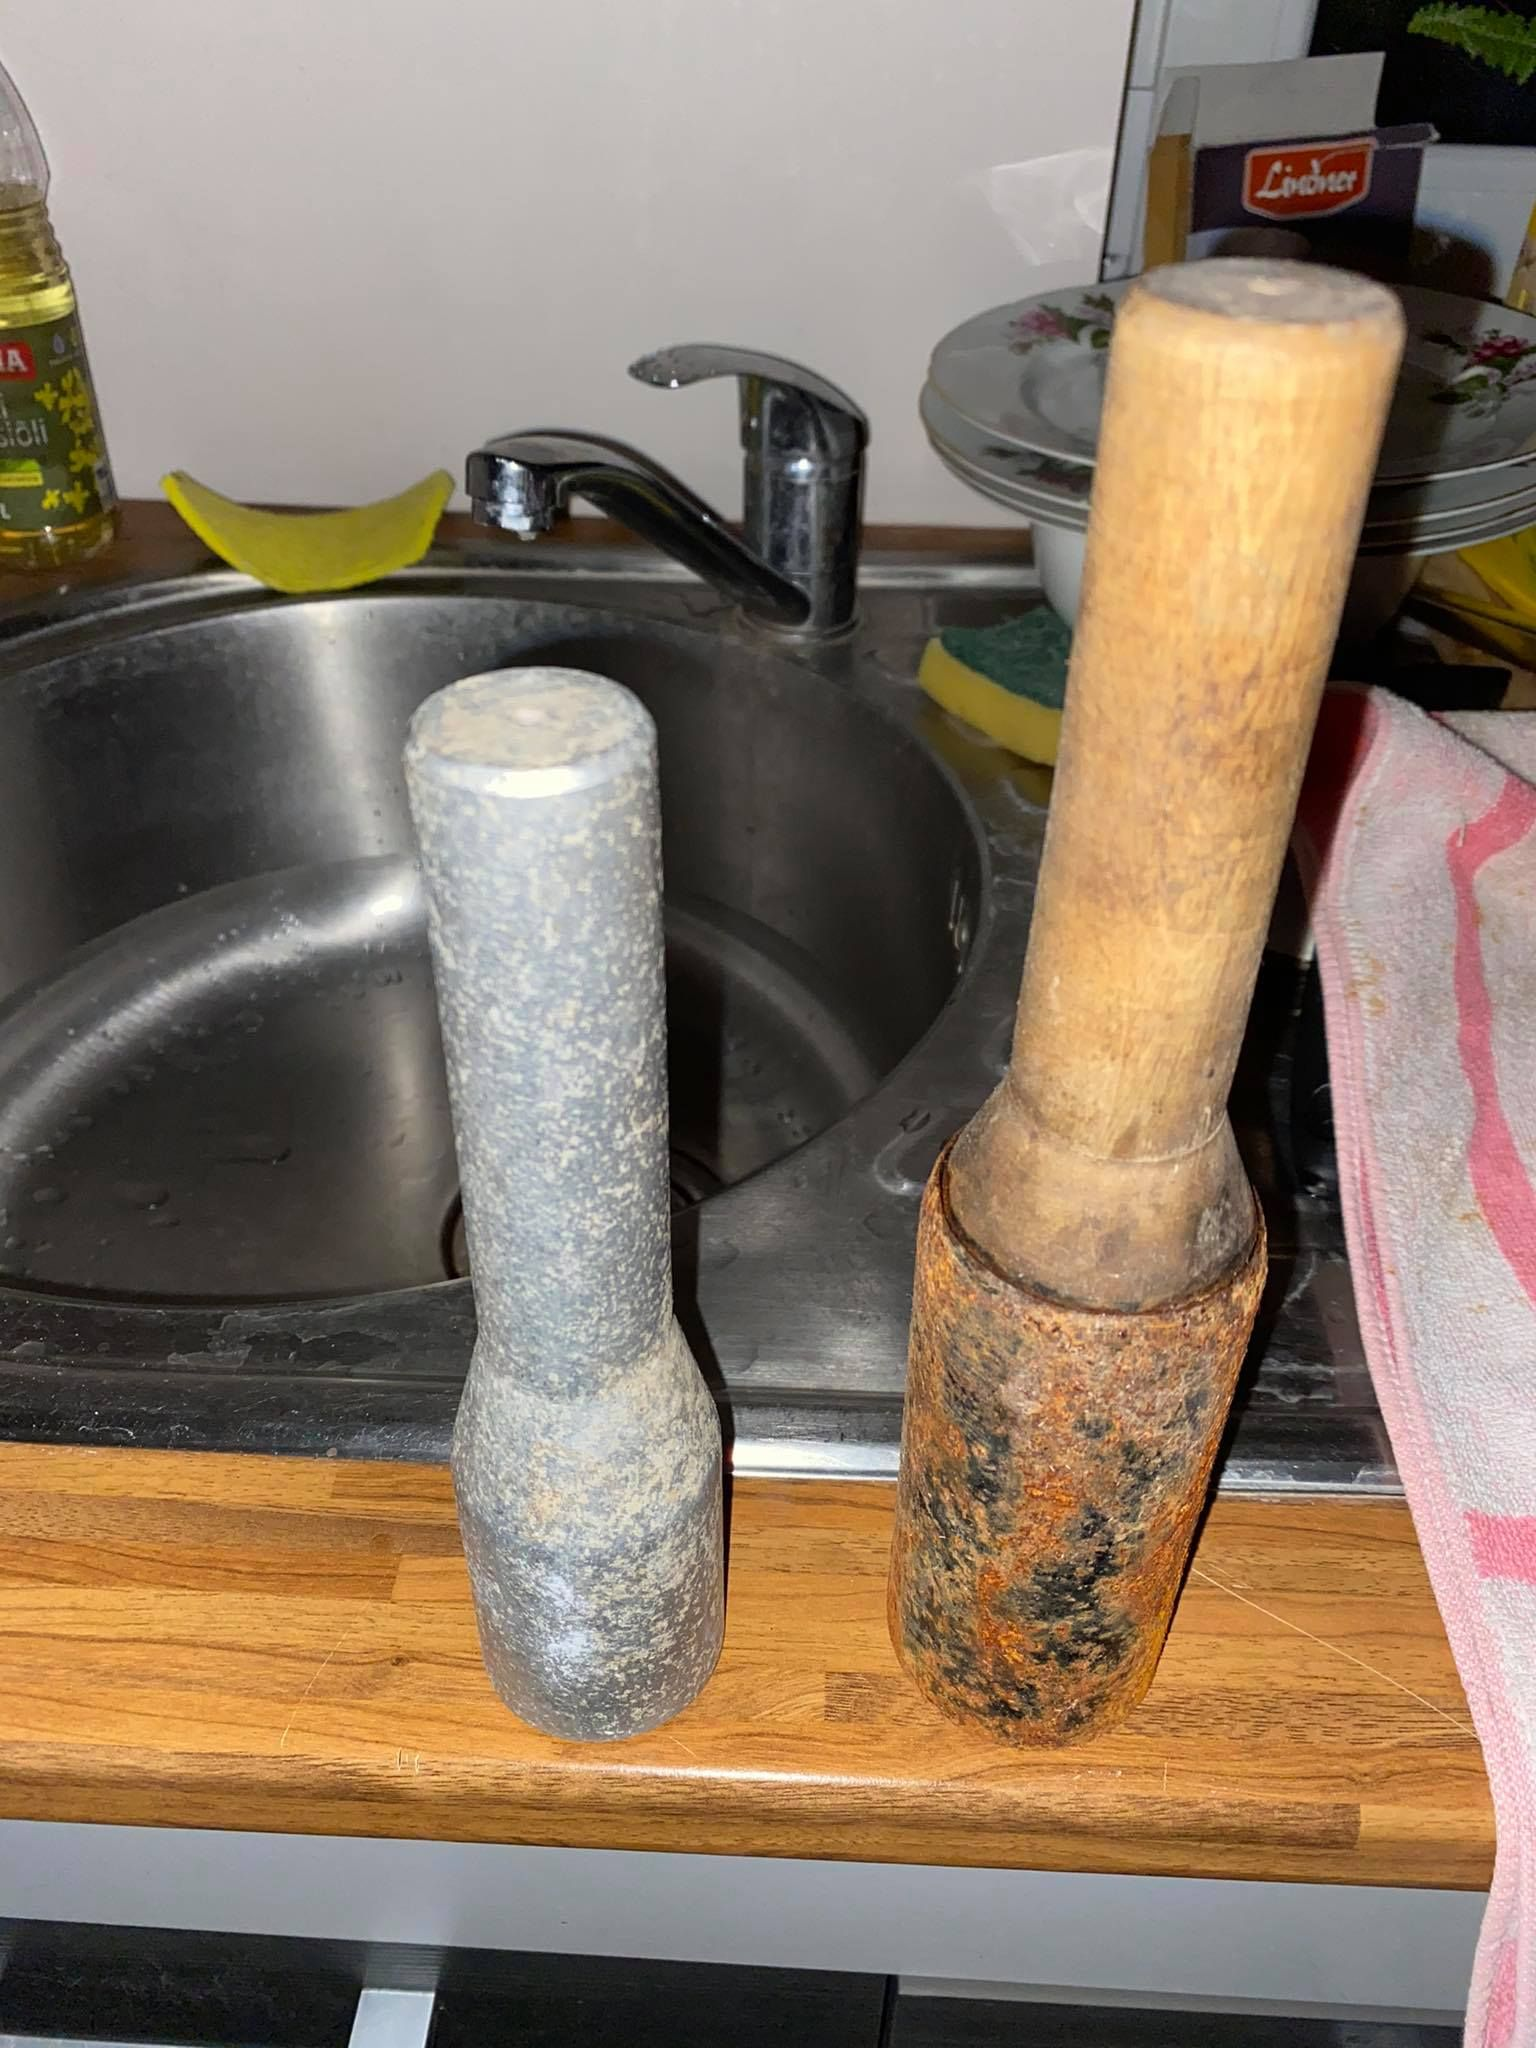 """Shoutout to my mom who very kindly brought me """"dumbells"""" from the basement and even washed them so I could work out at home with weights - turns out these are old Soviet-era hand grenades"""